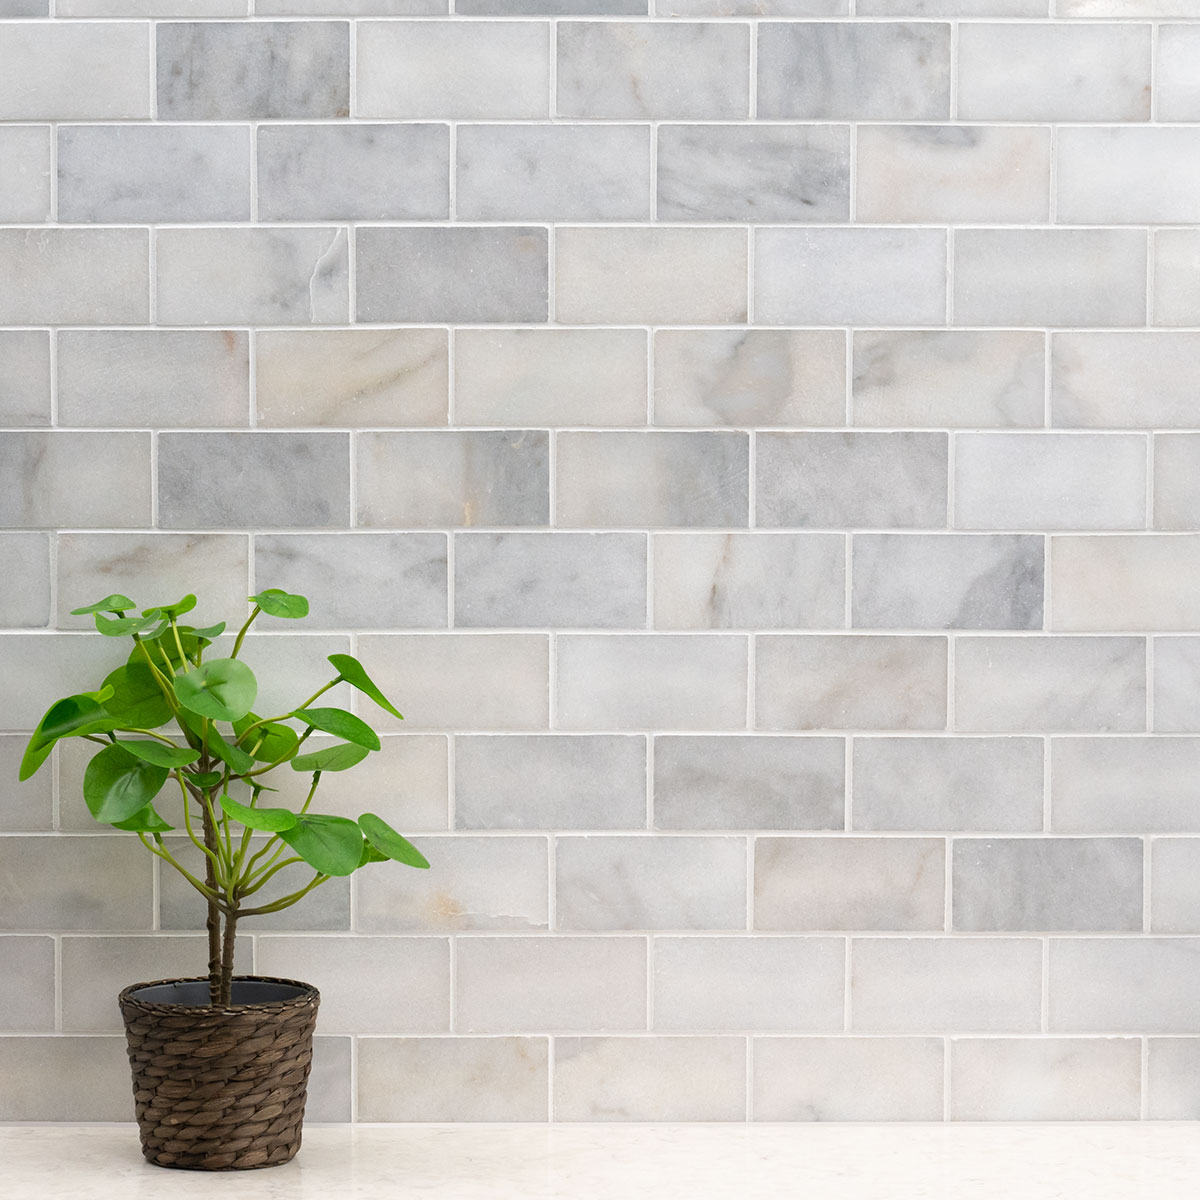 Greecian White Marble Subway Tile 9x9   Subway Tile Collection